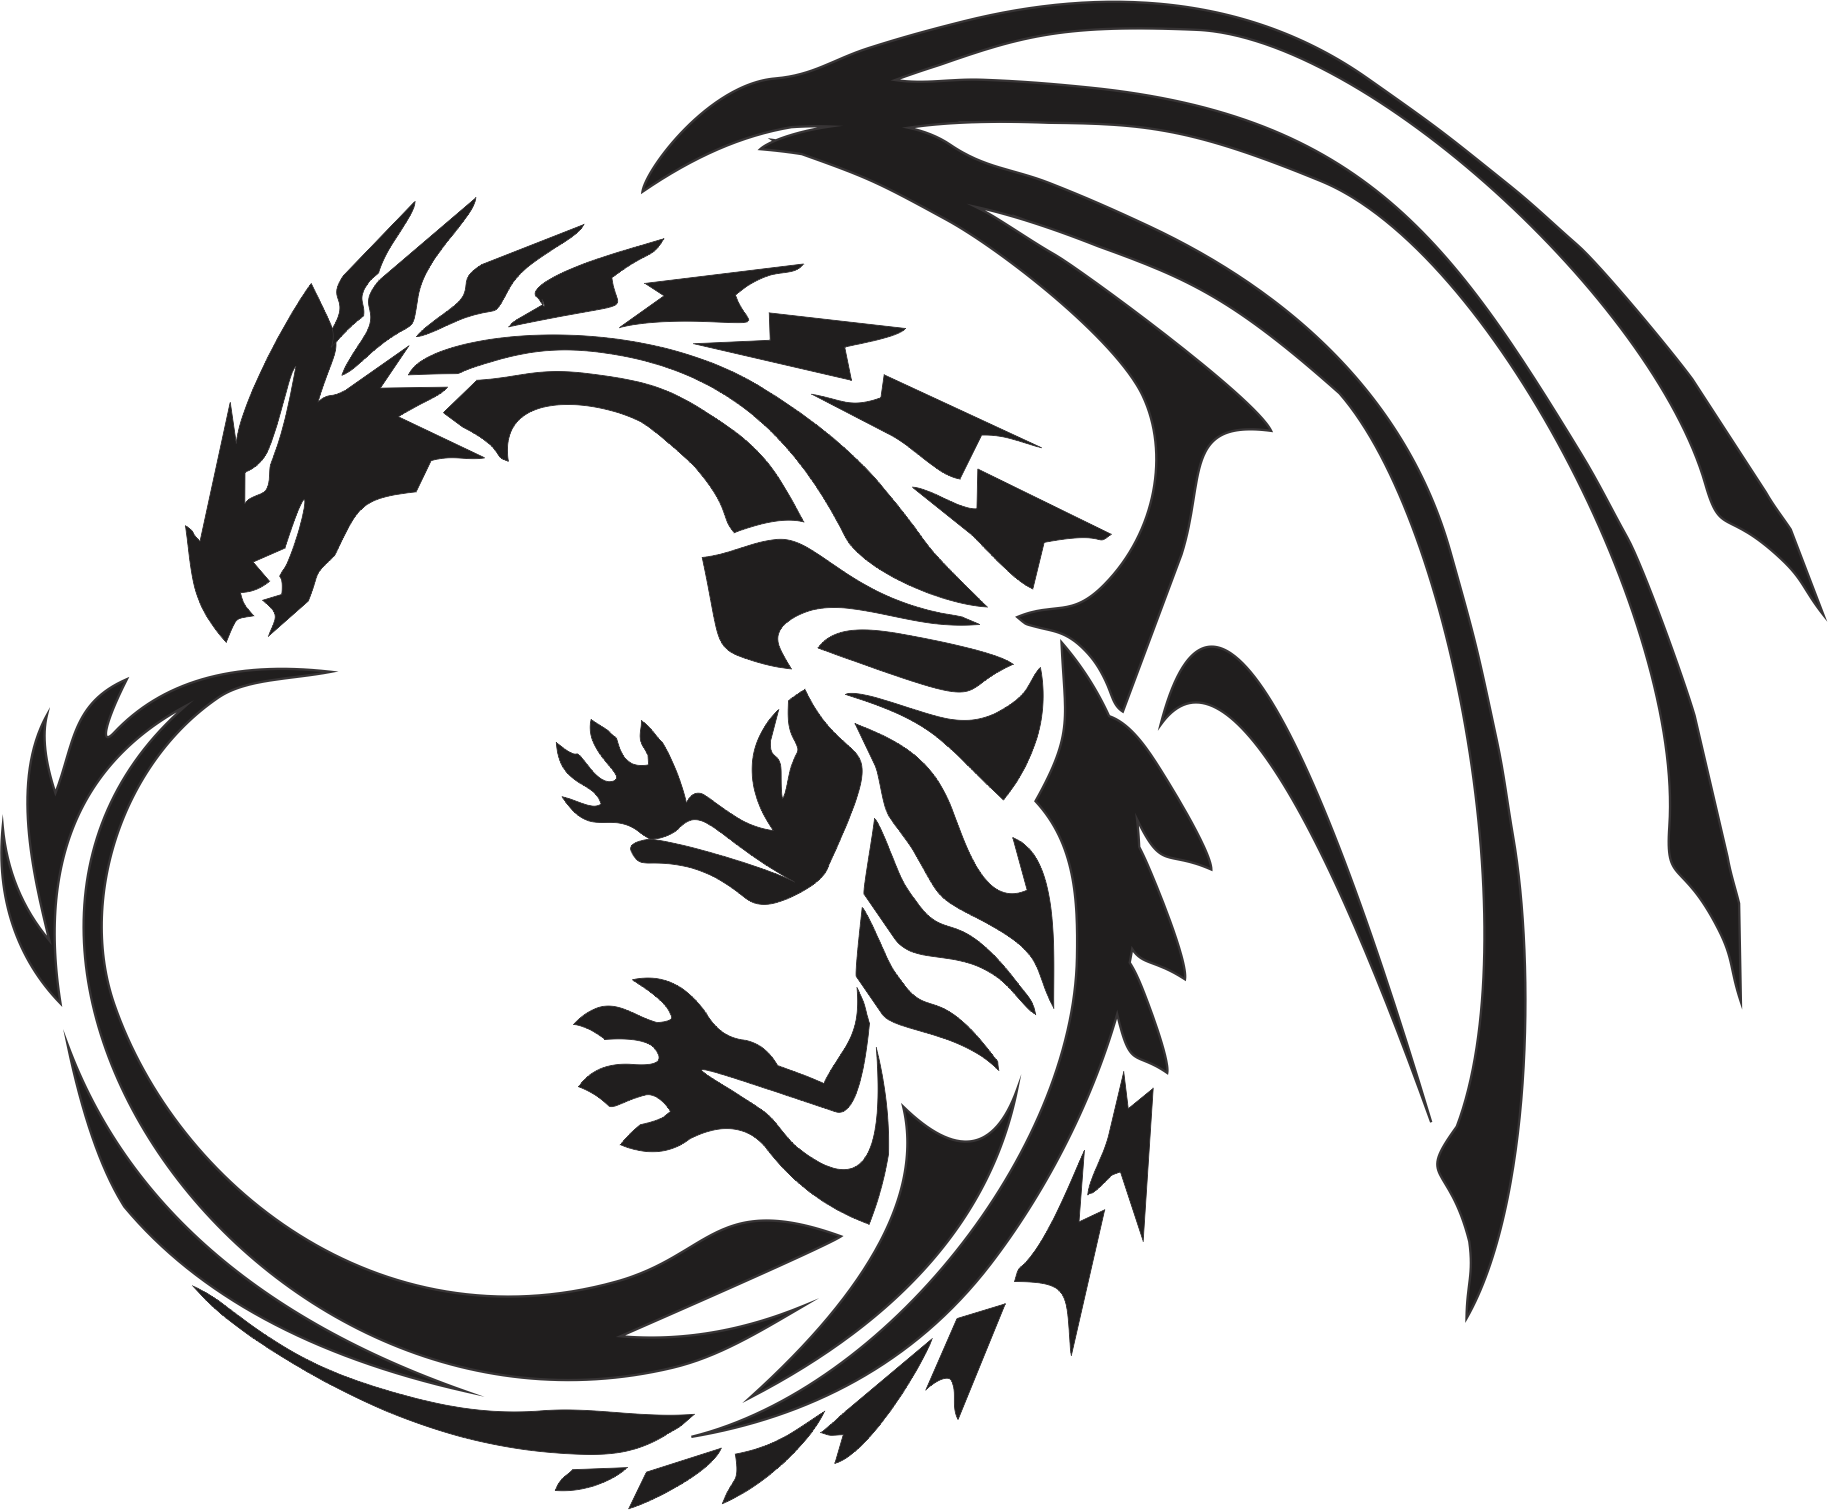 Dragon Tattoos Png Image PNG Image - Dragon Tattoos PNG